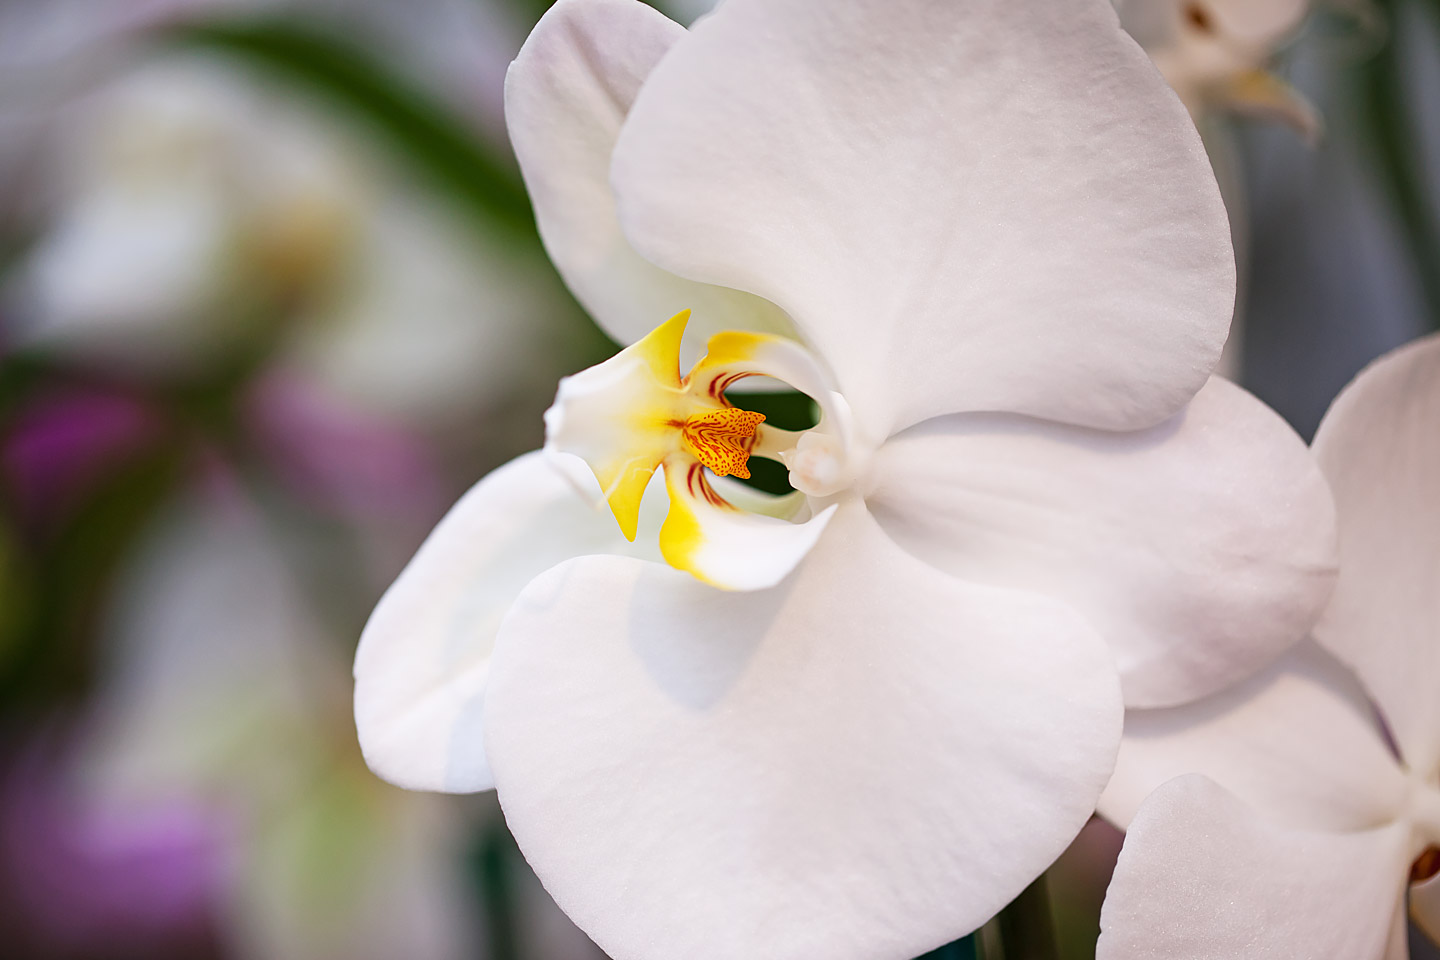 a close-up of a beautiful white phalaenopsis orchid, photographed by Jacob Rosenfeld